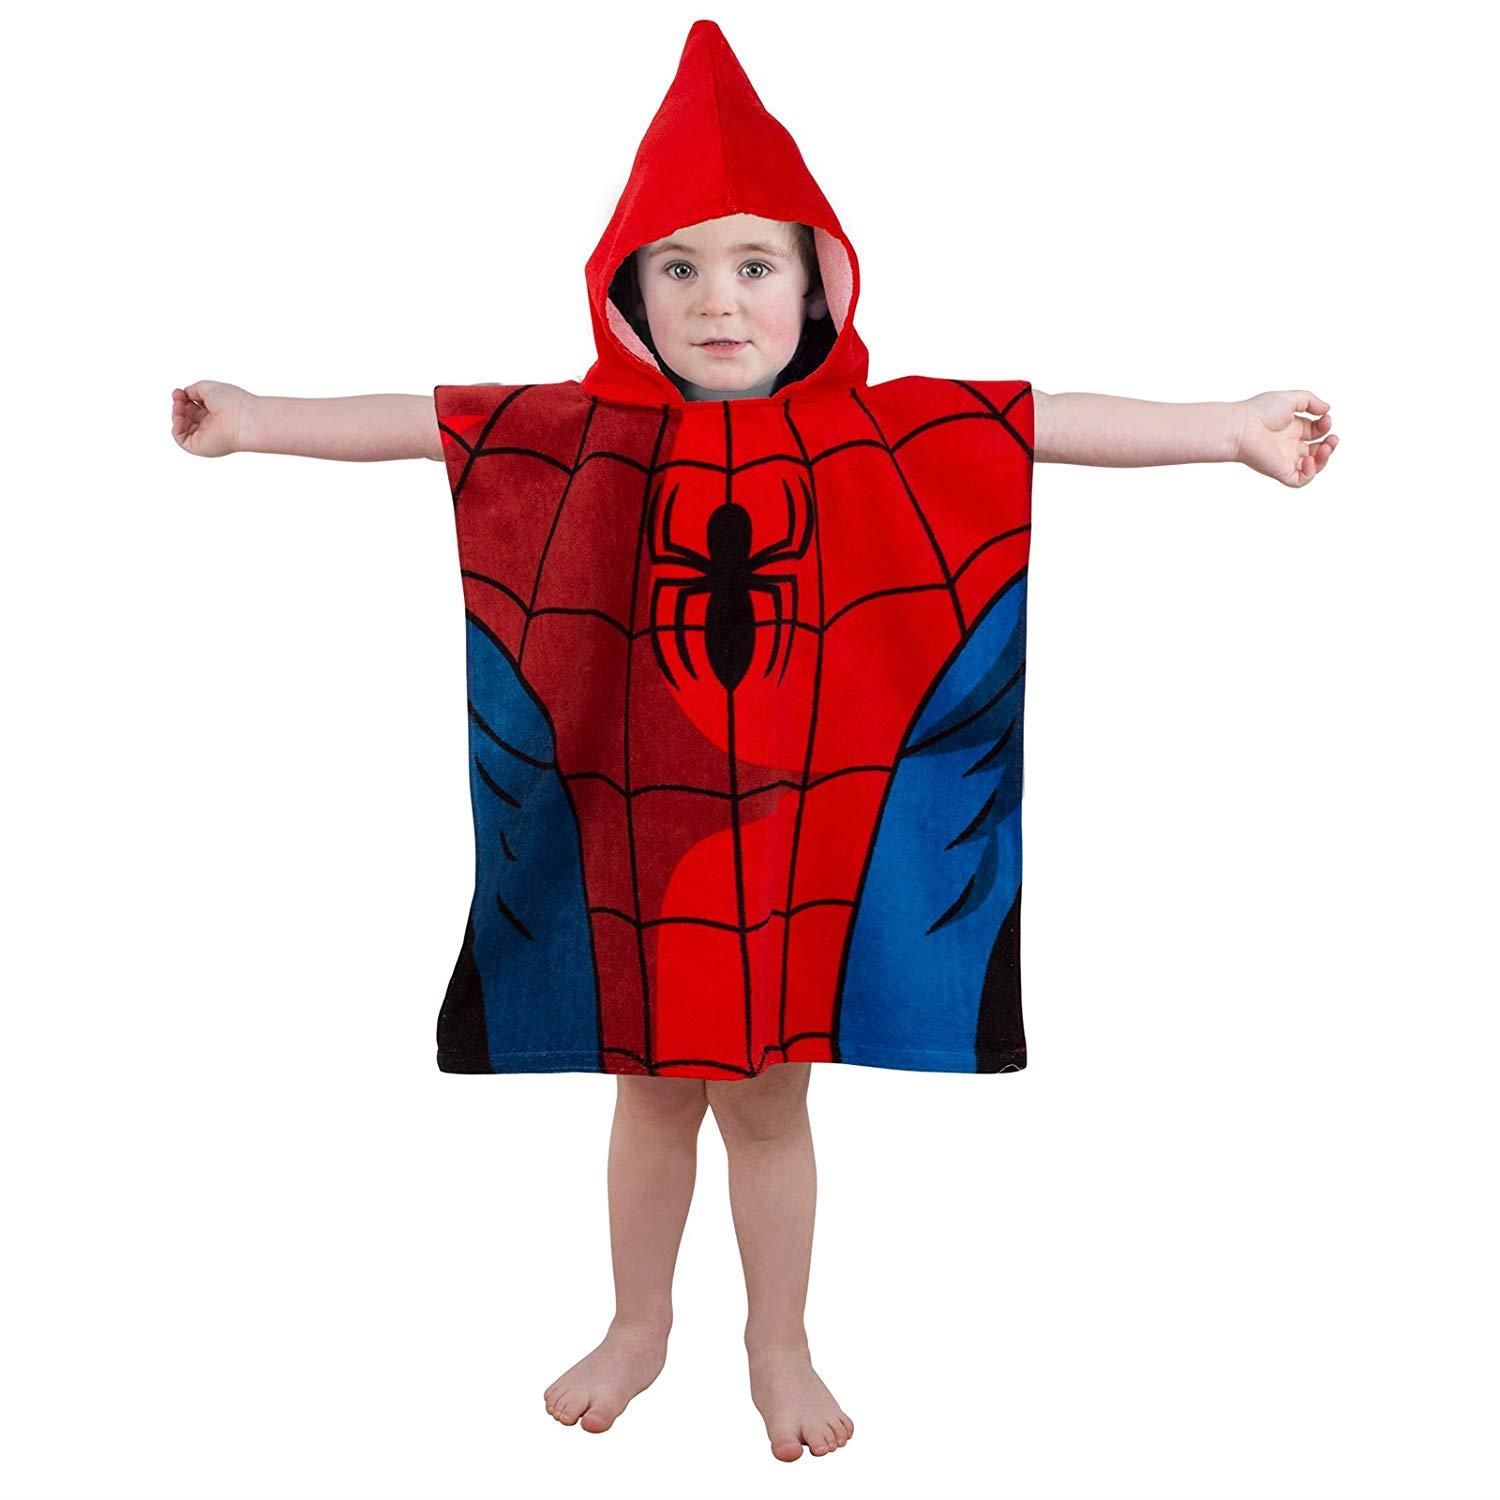 Kids-Boys-Novelty-Girls-Character-Hooded-Towel-Poncho-Beach-Bath-Swim thumbnail 31